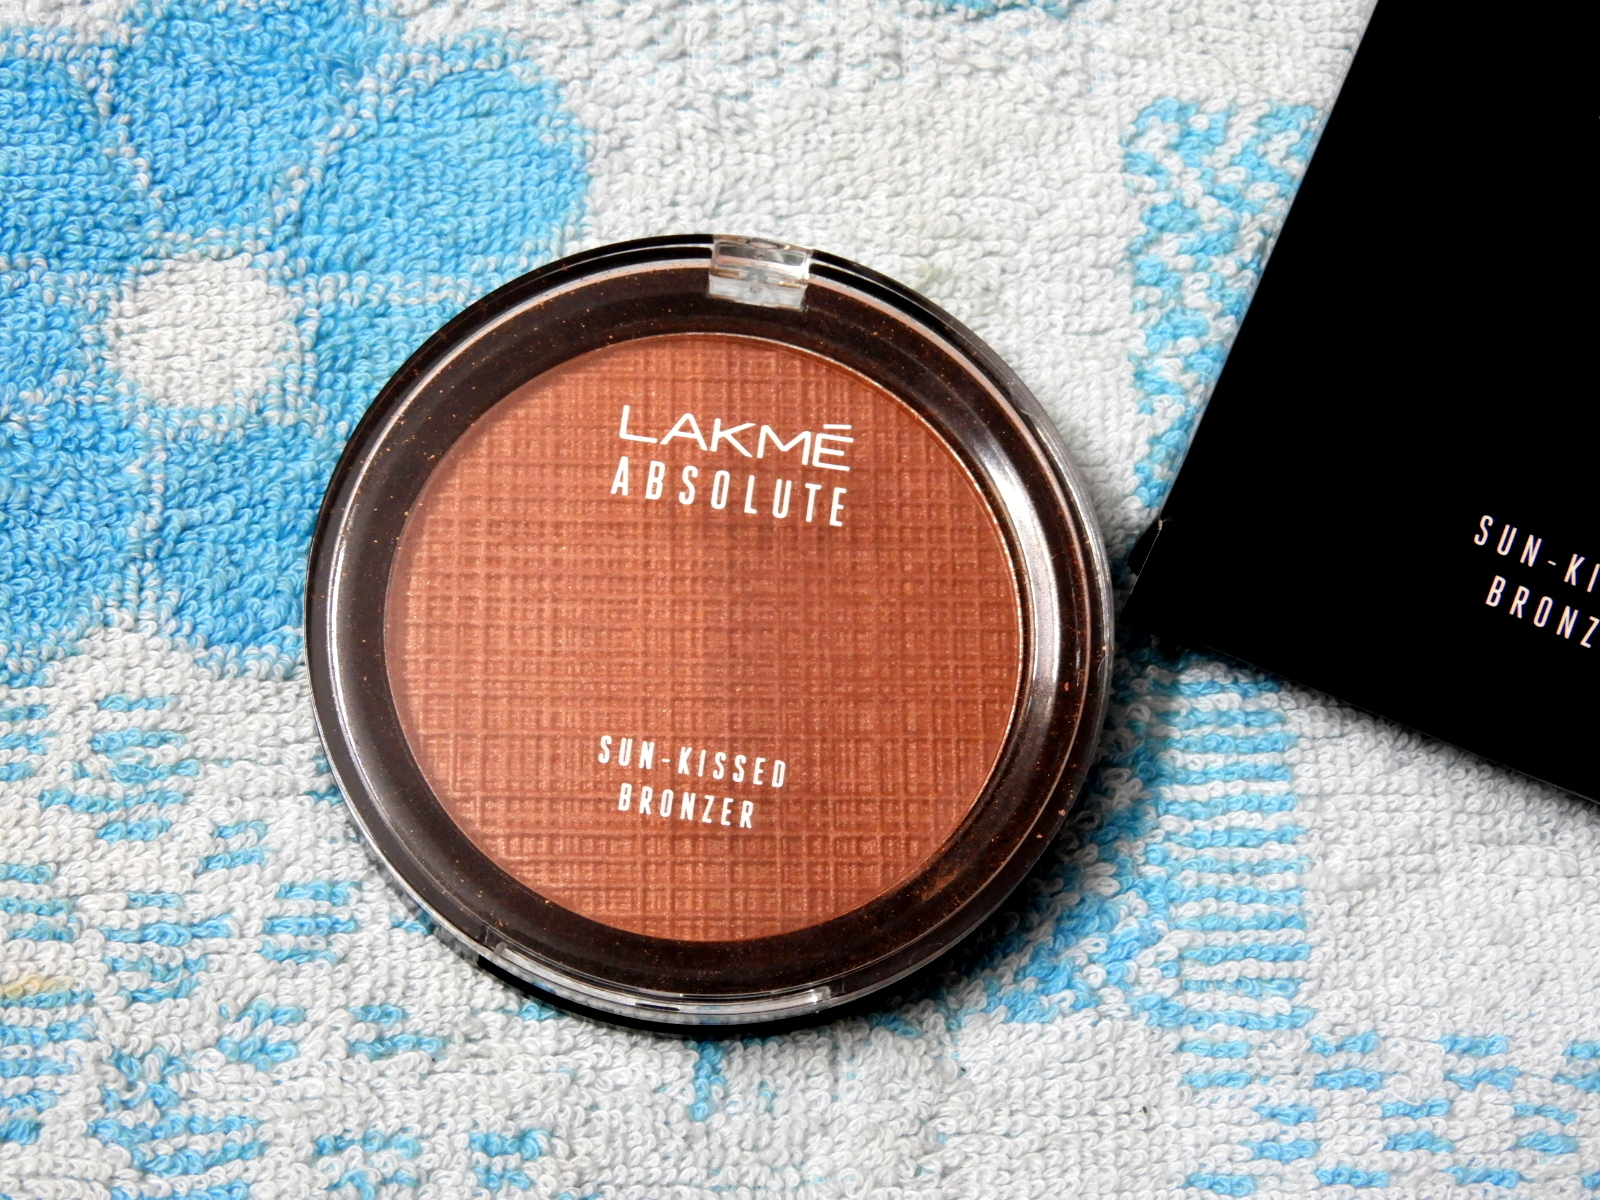 Lakme Absolute Sun-Kissed Bronzer-Review